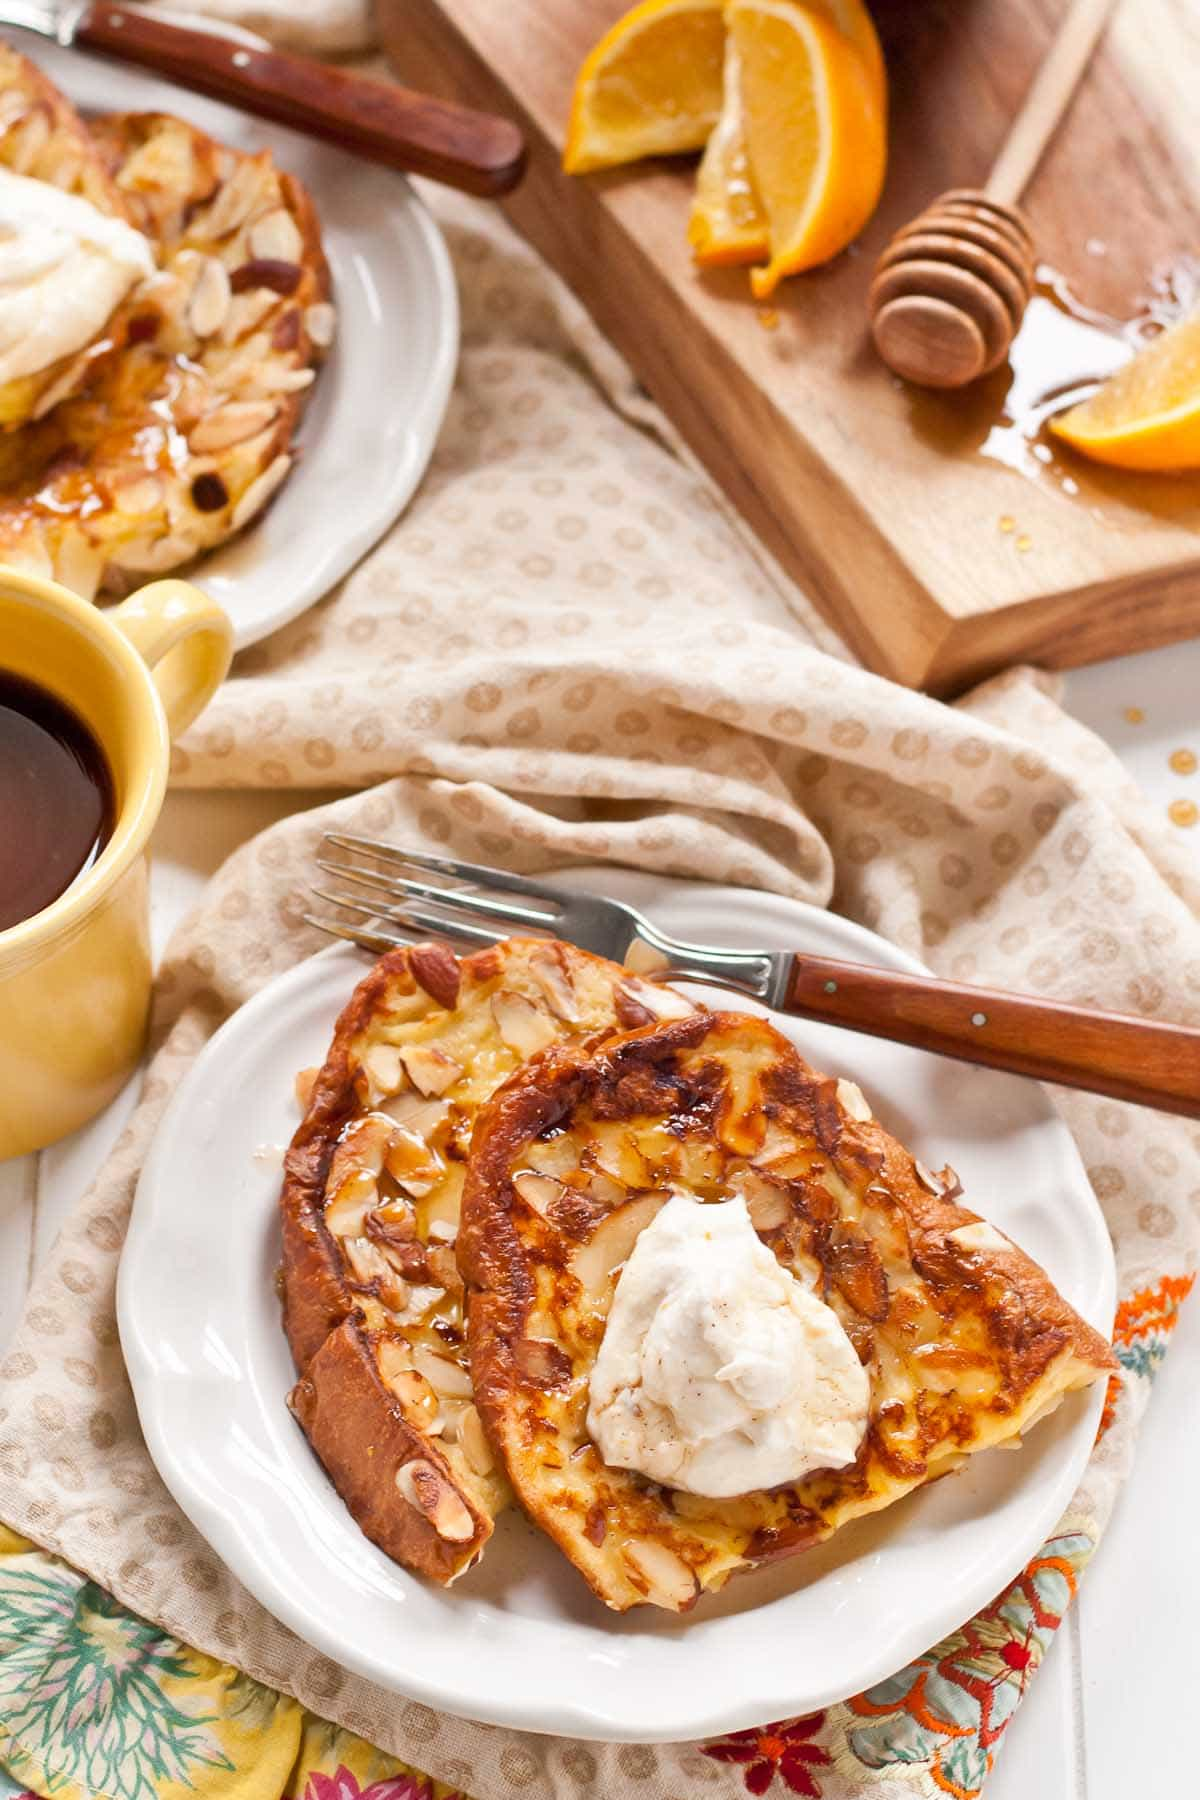 Make this Almond Crusted French Toast with Ricotta and Honey for Christmas morning breakfast!